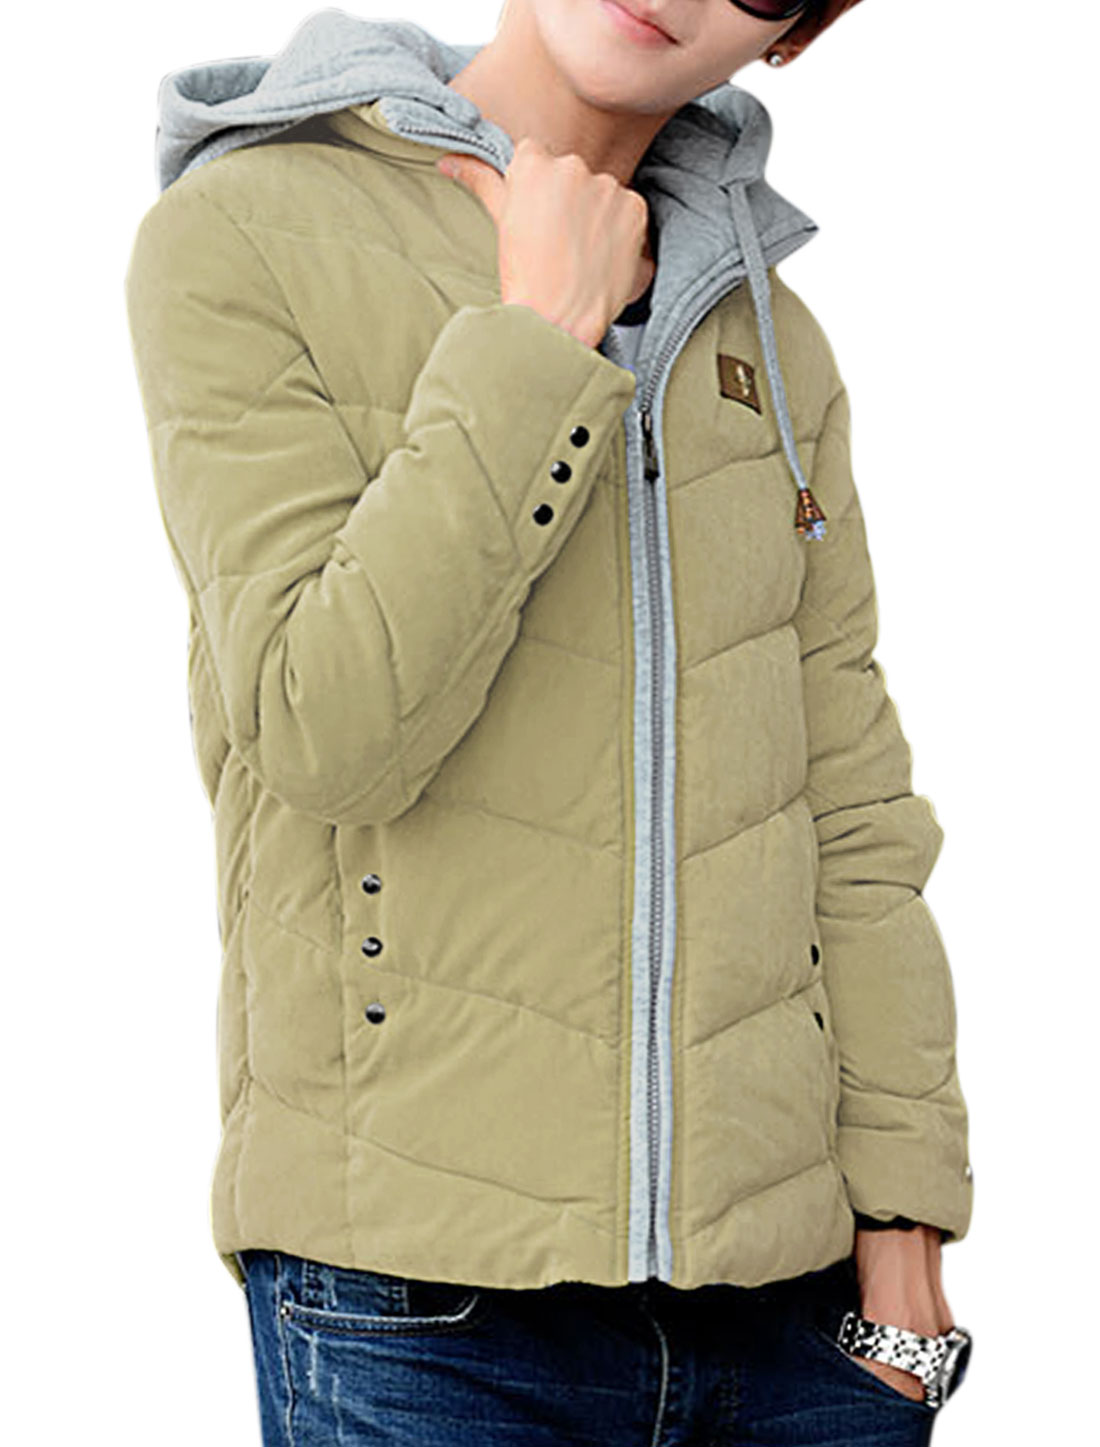 Man Long Sleeves Stand Collar Zip Up Light Khaki Padded Coat M